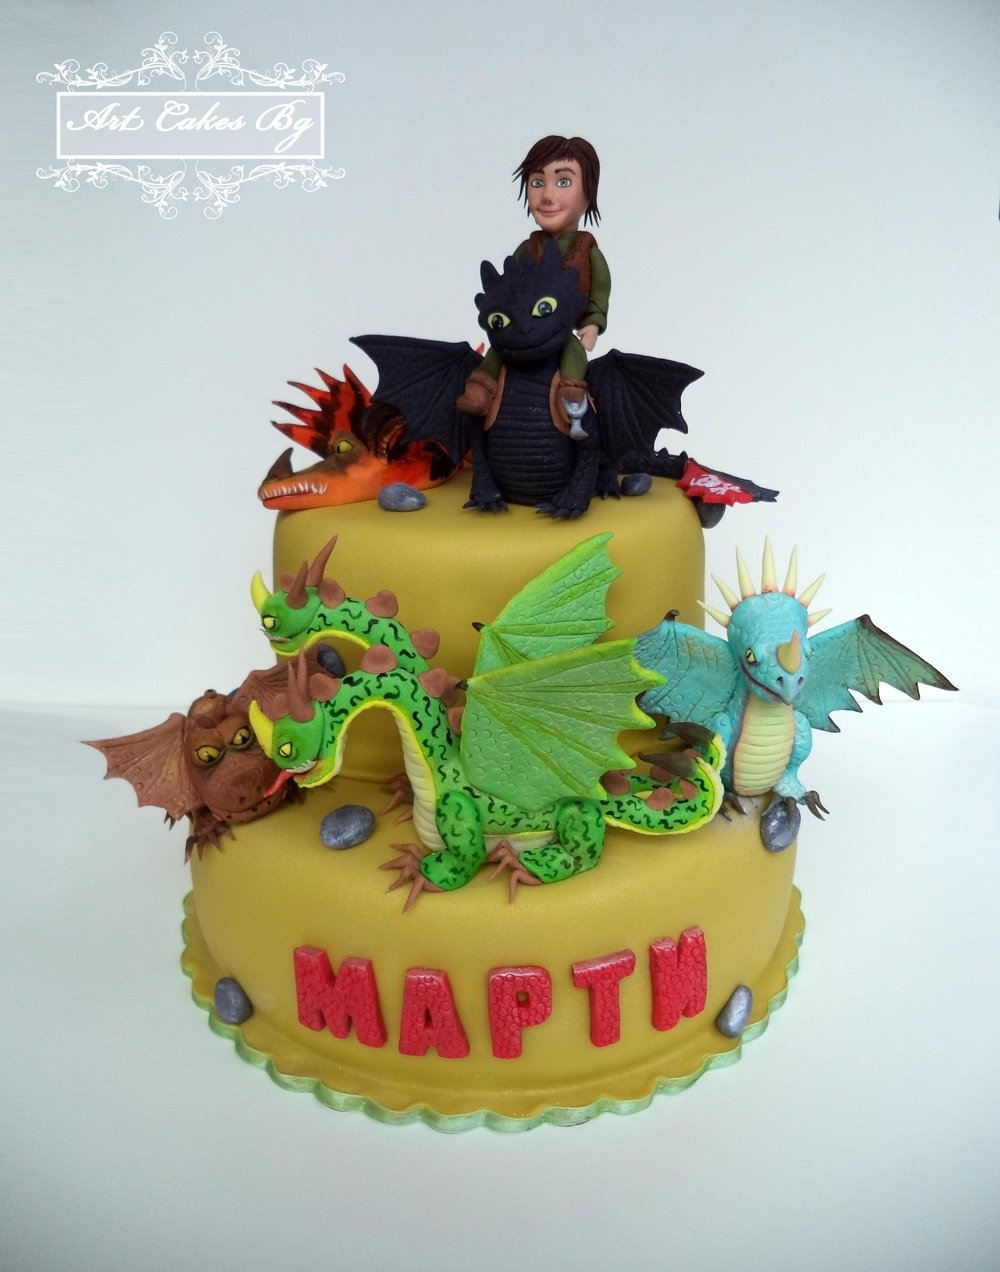 10 Most Recommended How To Train Your Dragon Cake Ideas cake how to train your dragon 2 dragons riders of berk dragons 2020